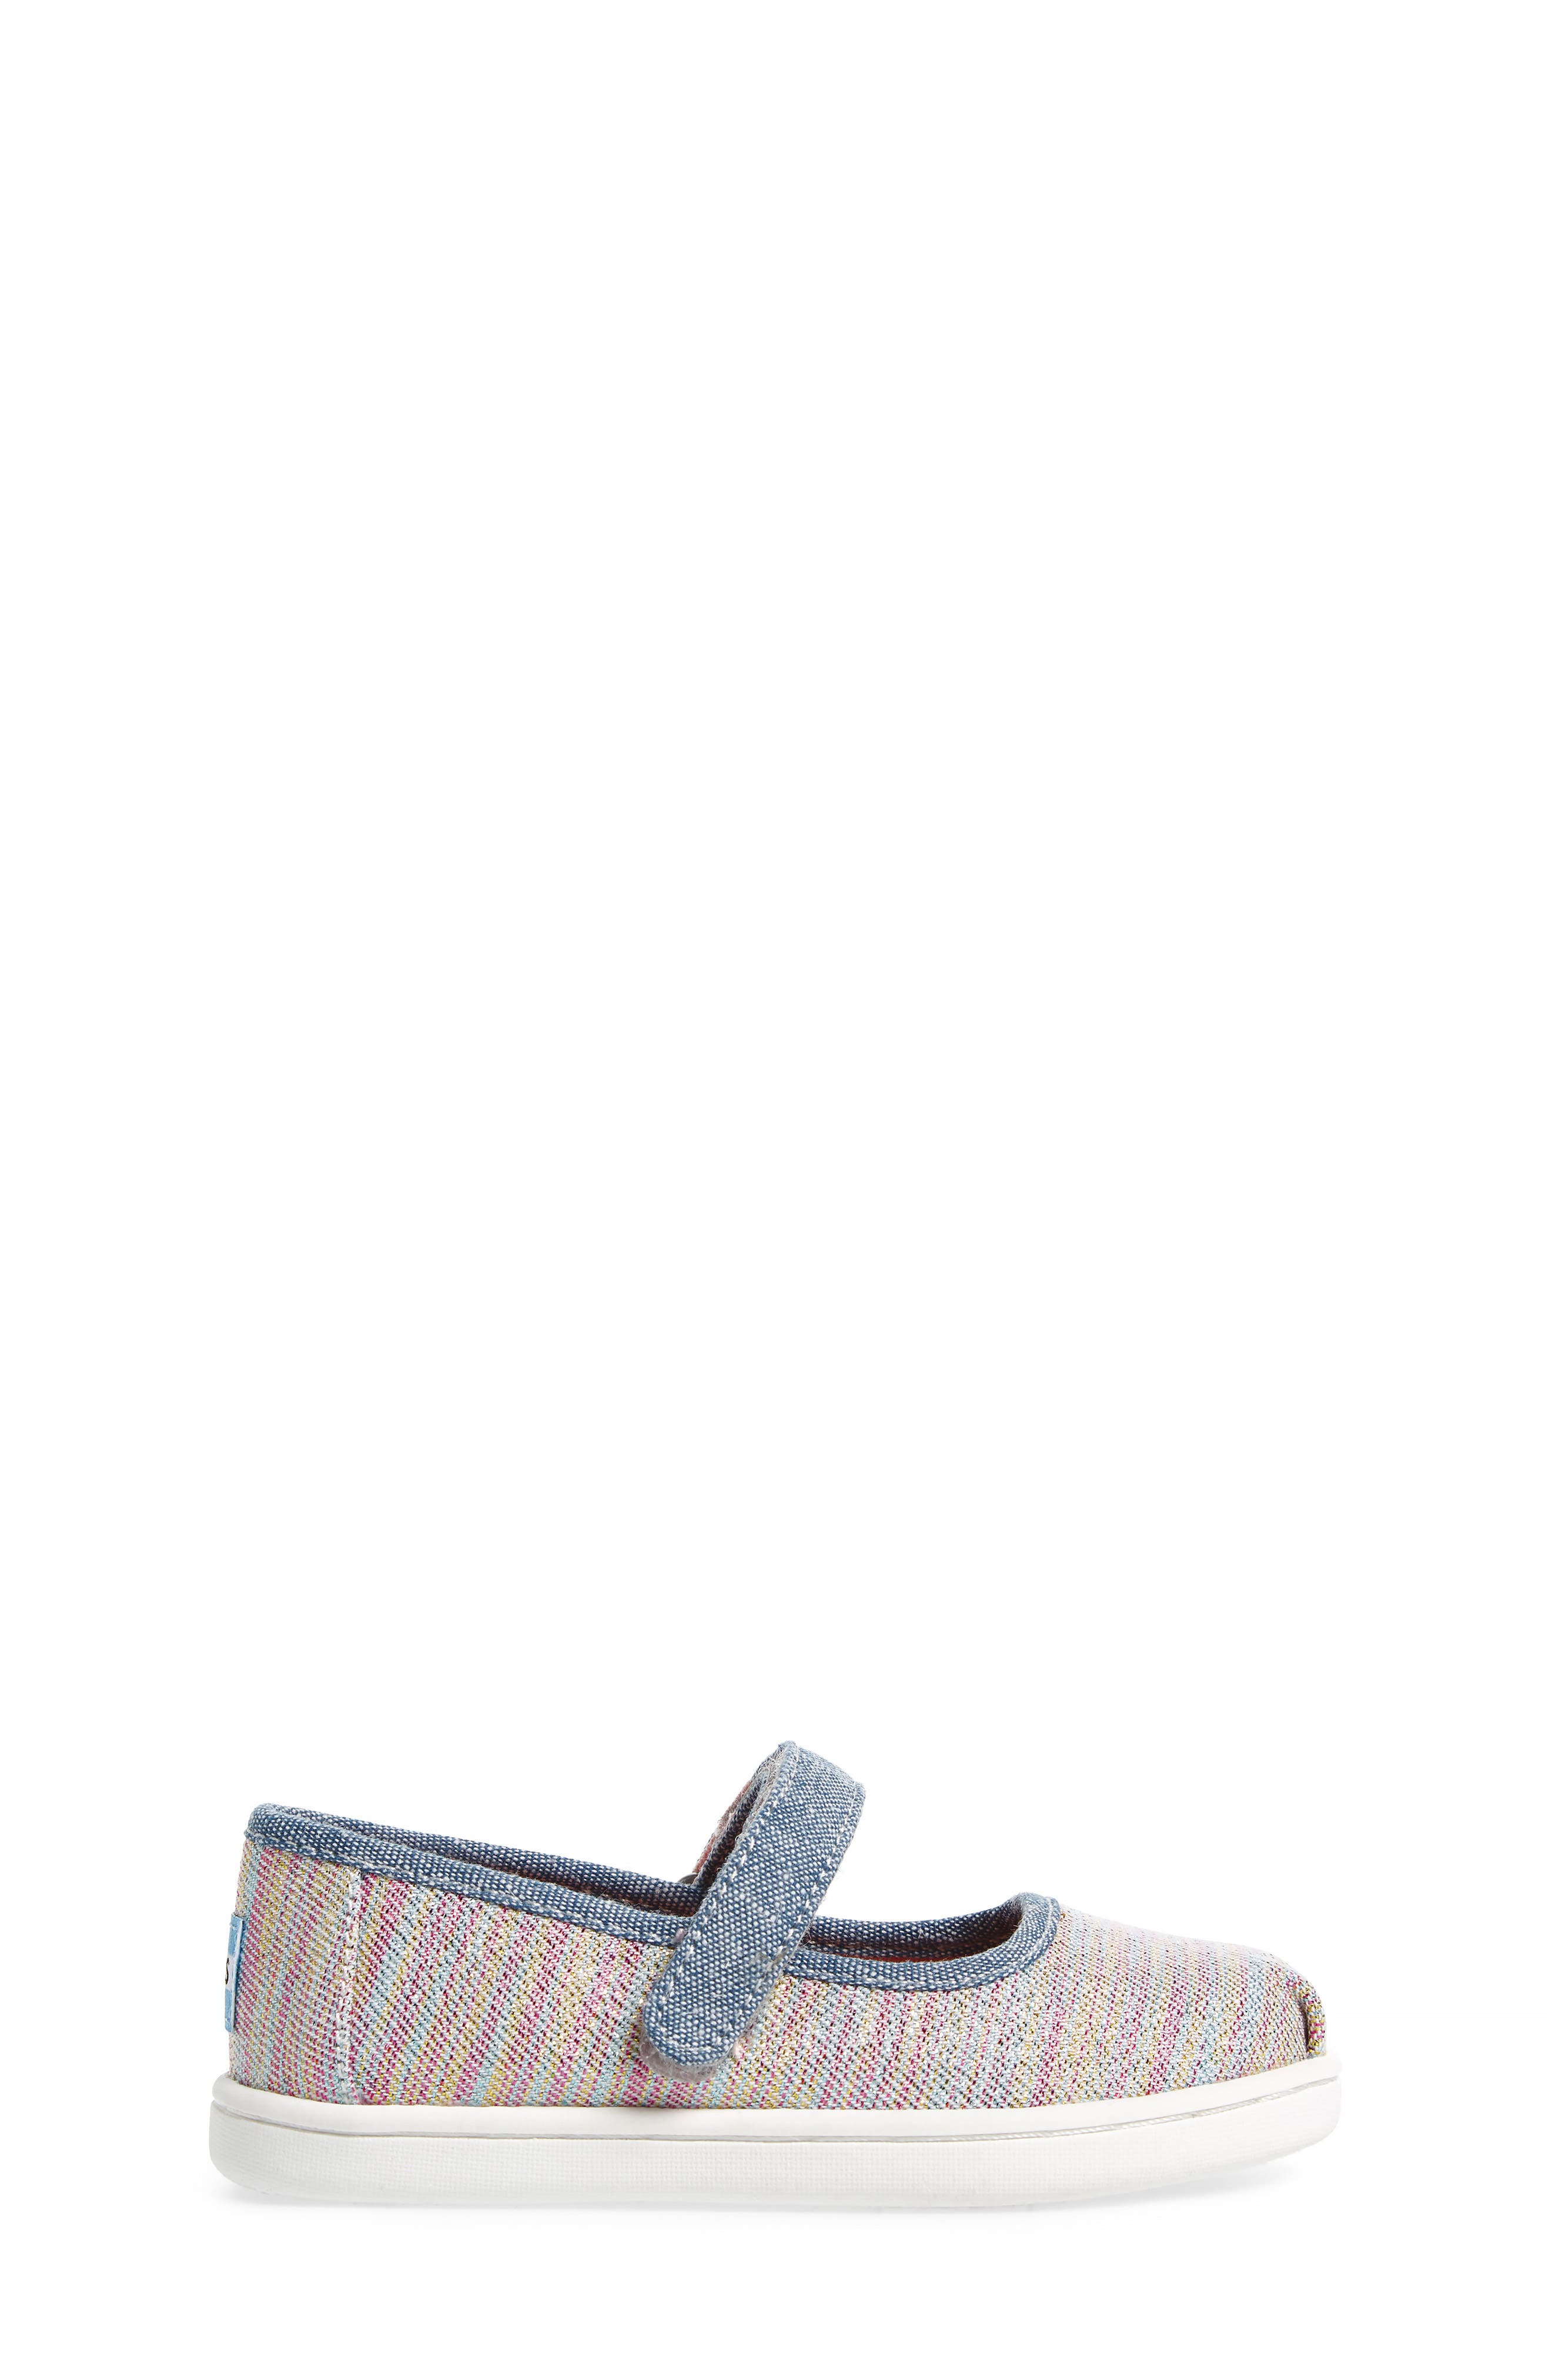 Mary Jane Sneaker,                             Alternate thumbnail 3, color,                             PINK MULTI TWILL GLIMMER